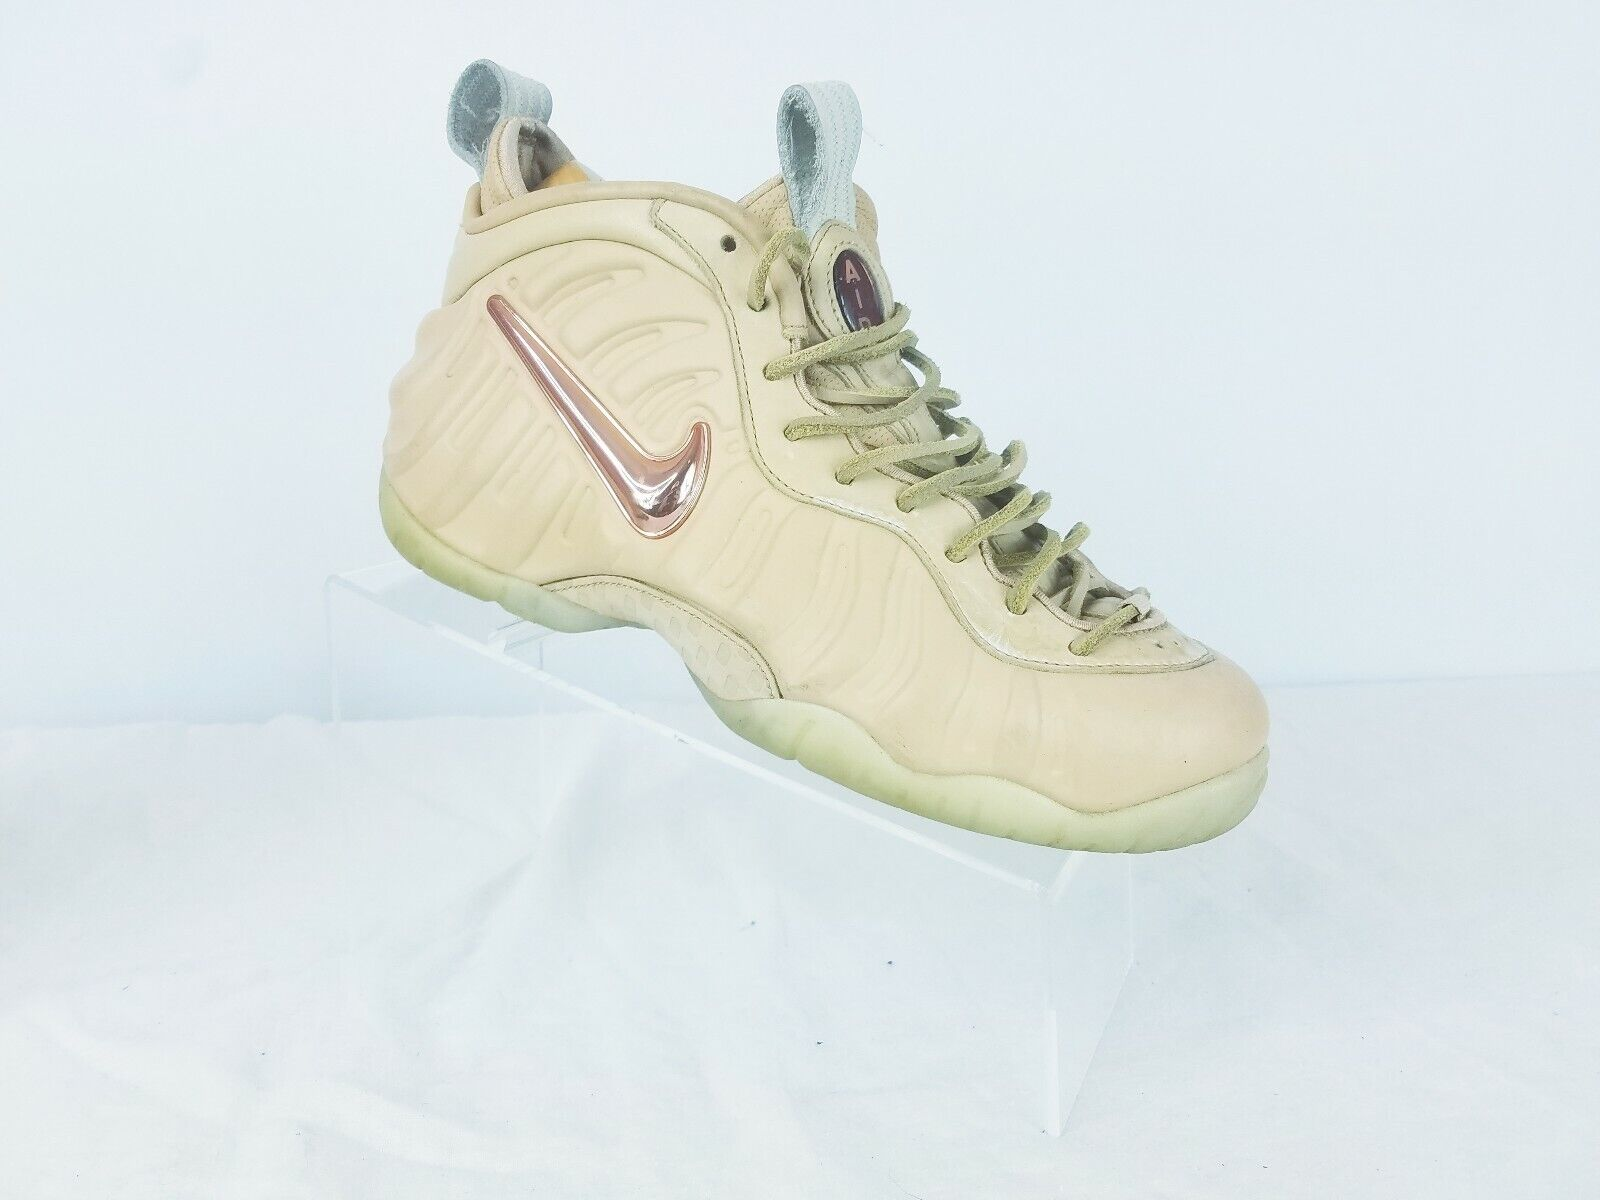 Nike Air Foamposite Pro PRM AS QS Vachetta Tan pink gold 920377-200 Size 7